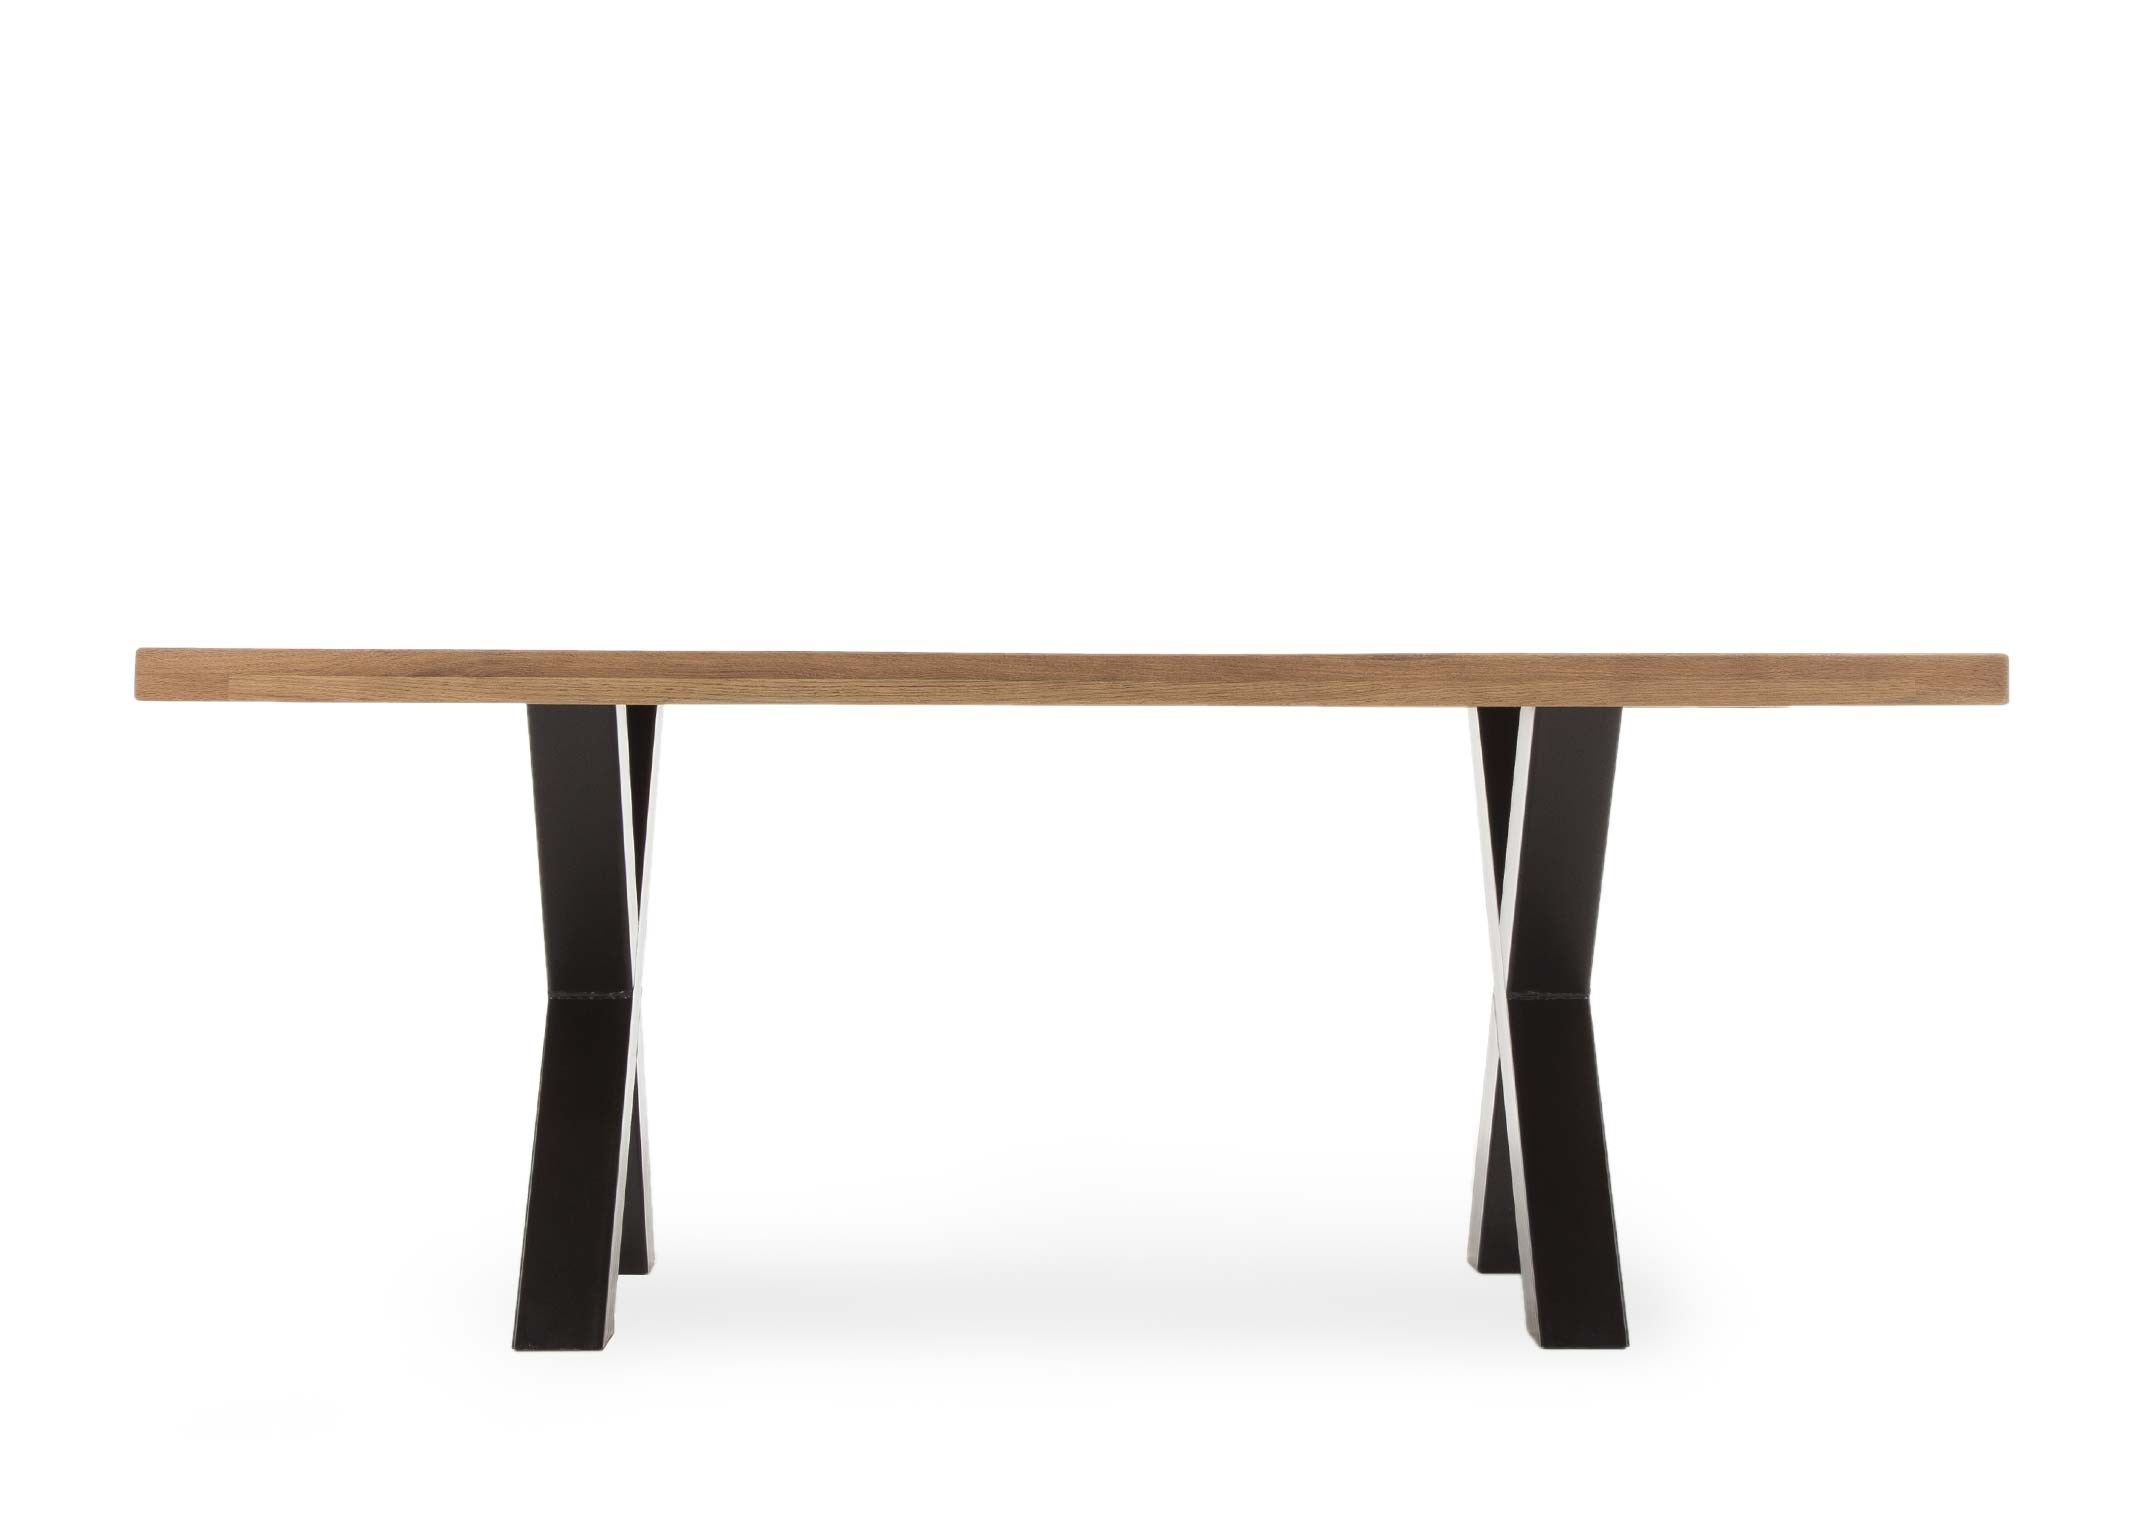 GENEVA LARGE DINING TABLE -L220cm x D100cm x H77cm. FRONT VIEW